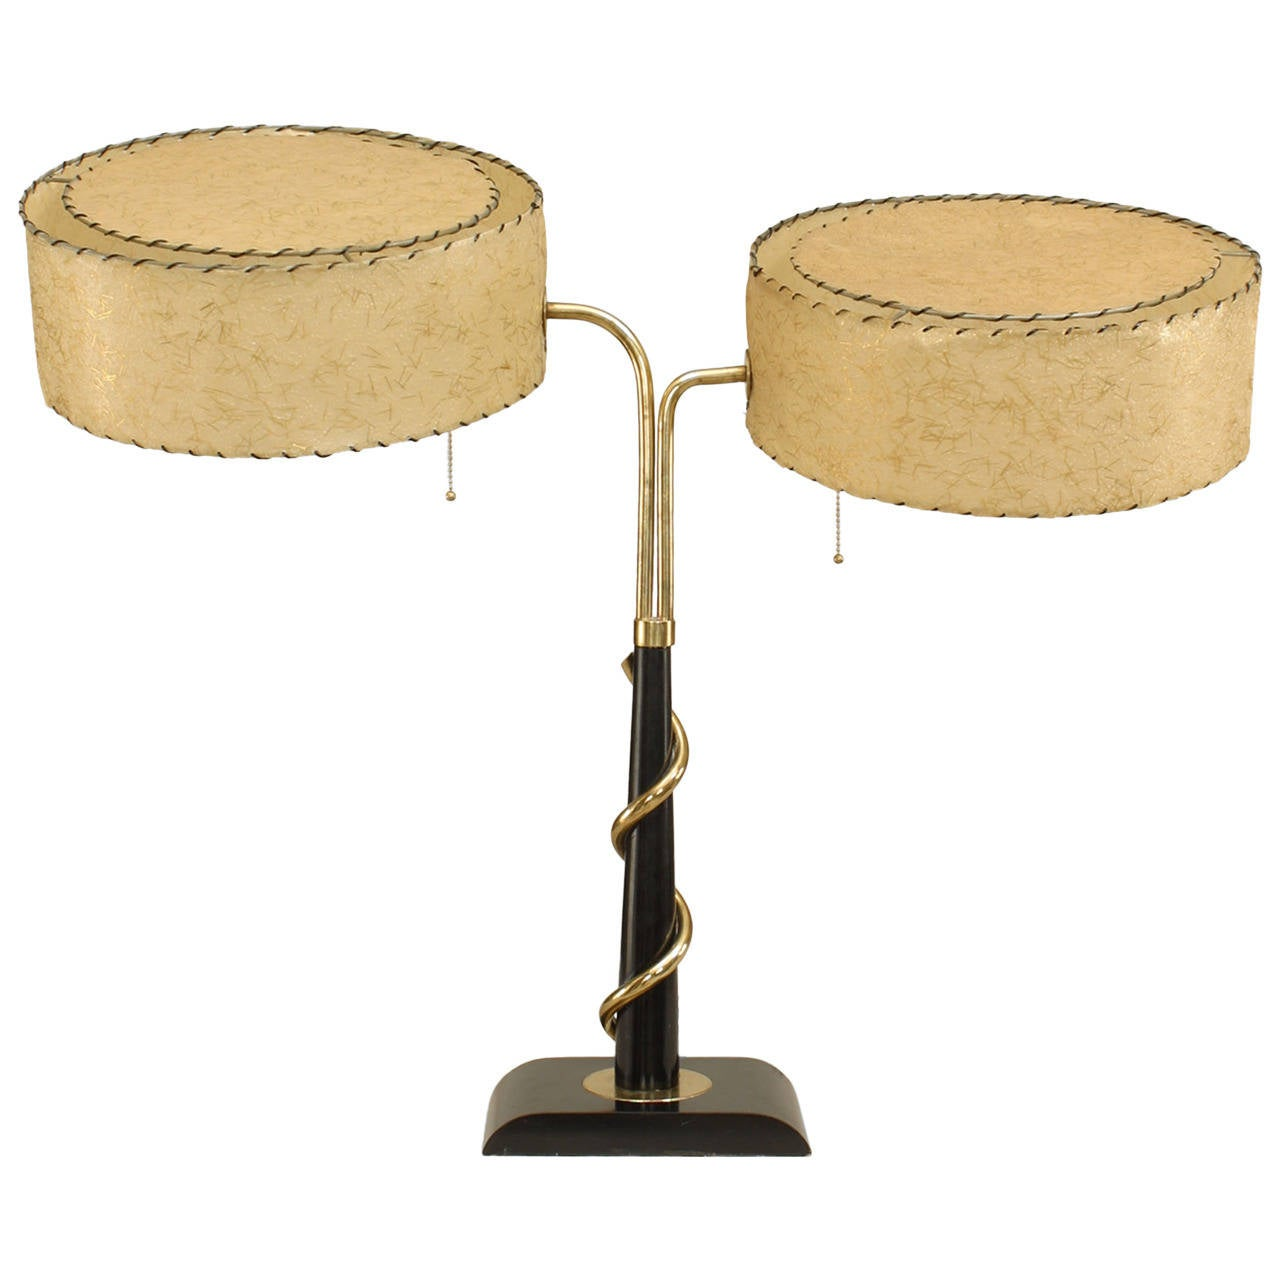 Mid-Century American Faux Brass-Trimmed Student Lamp by Majestic Lamp Co.